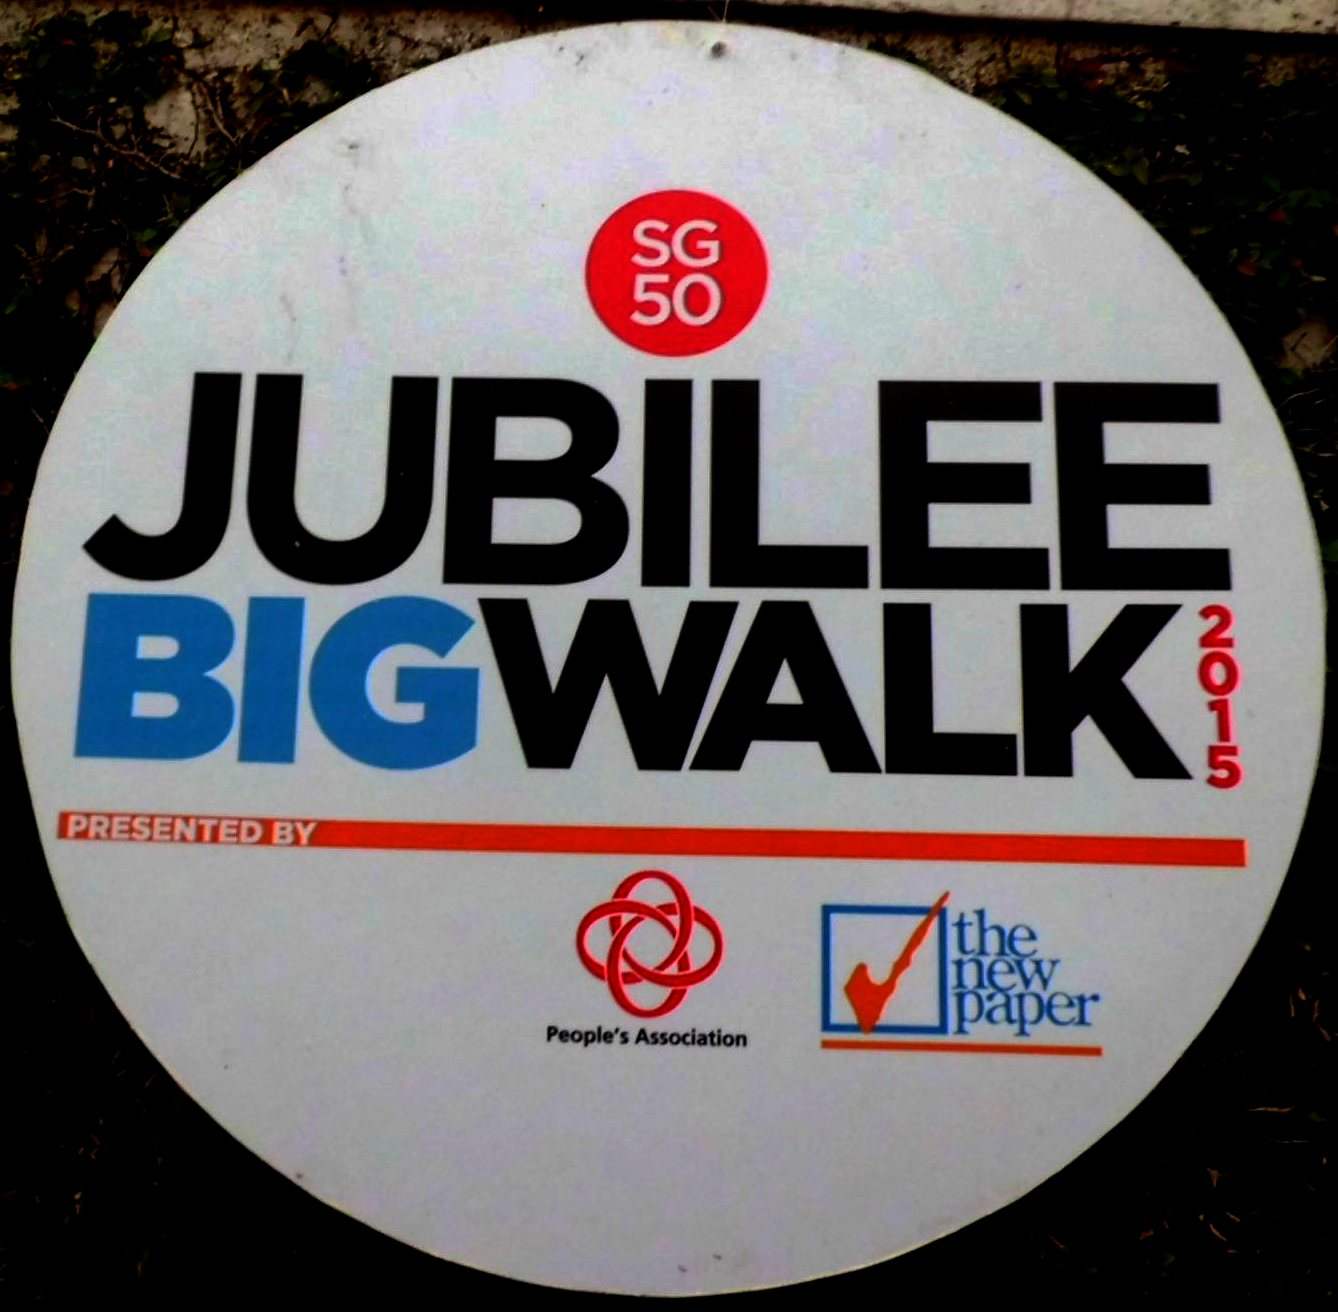 The SG50 Jubilee Big Walk went past historic and iconic sites in the Civic District. Some 25,000 people took part in the 5km mass walk, organised by The New Paper and the People's Association.